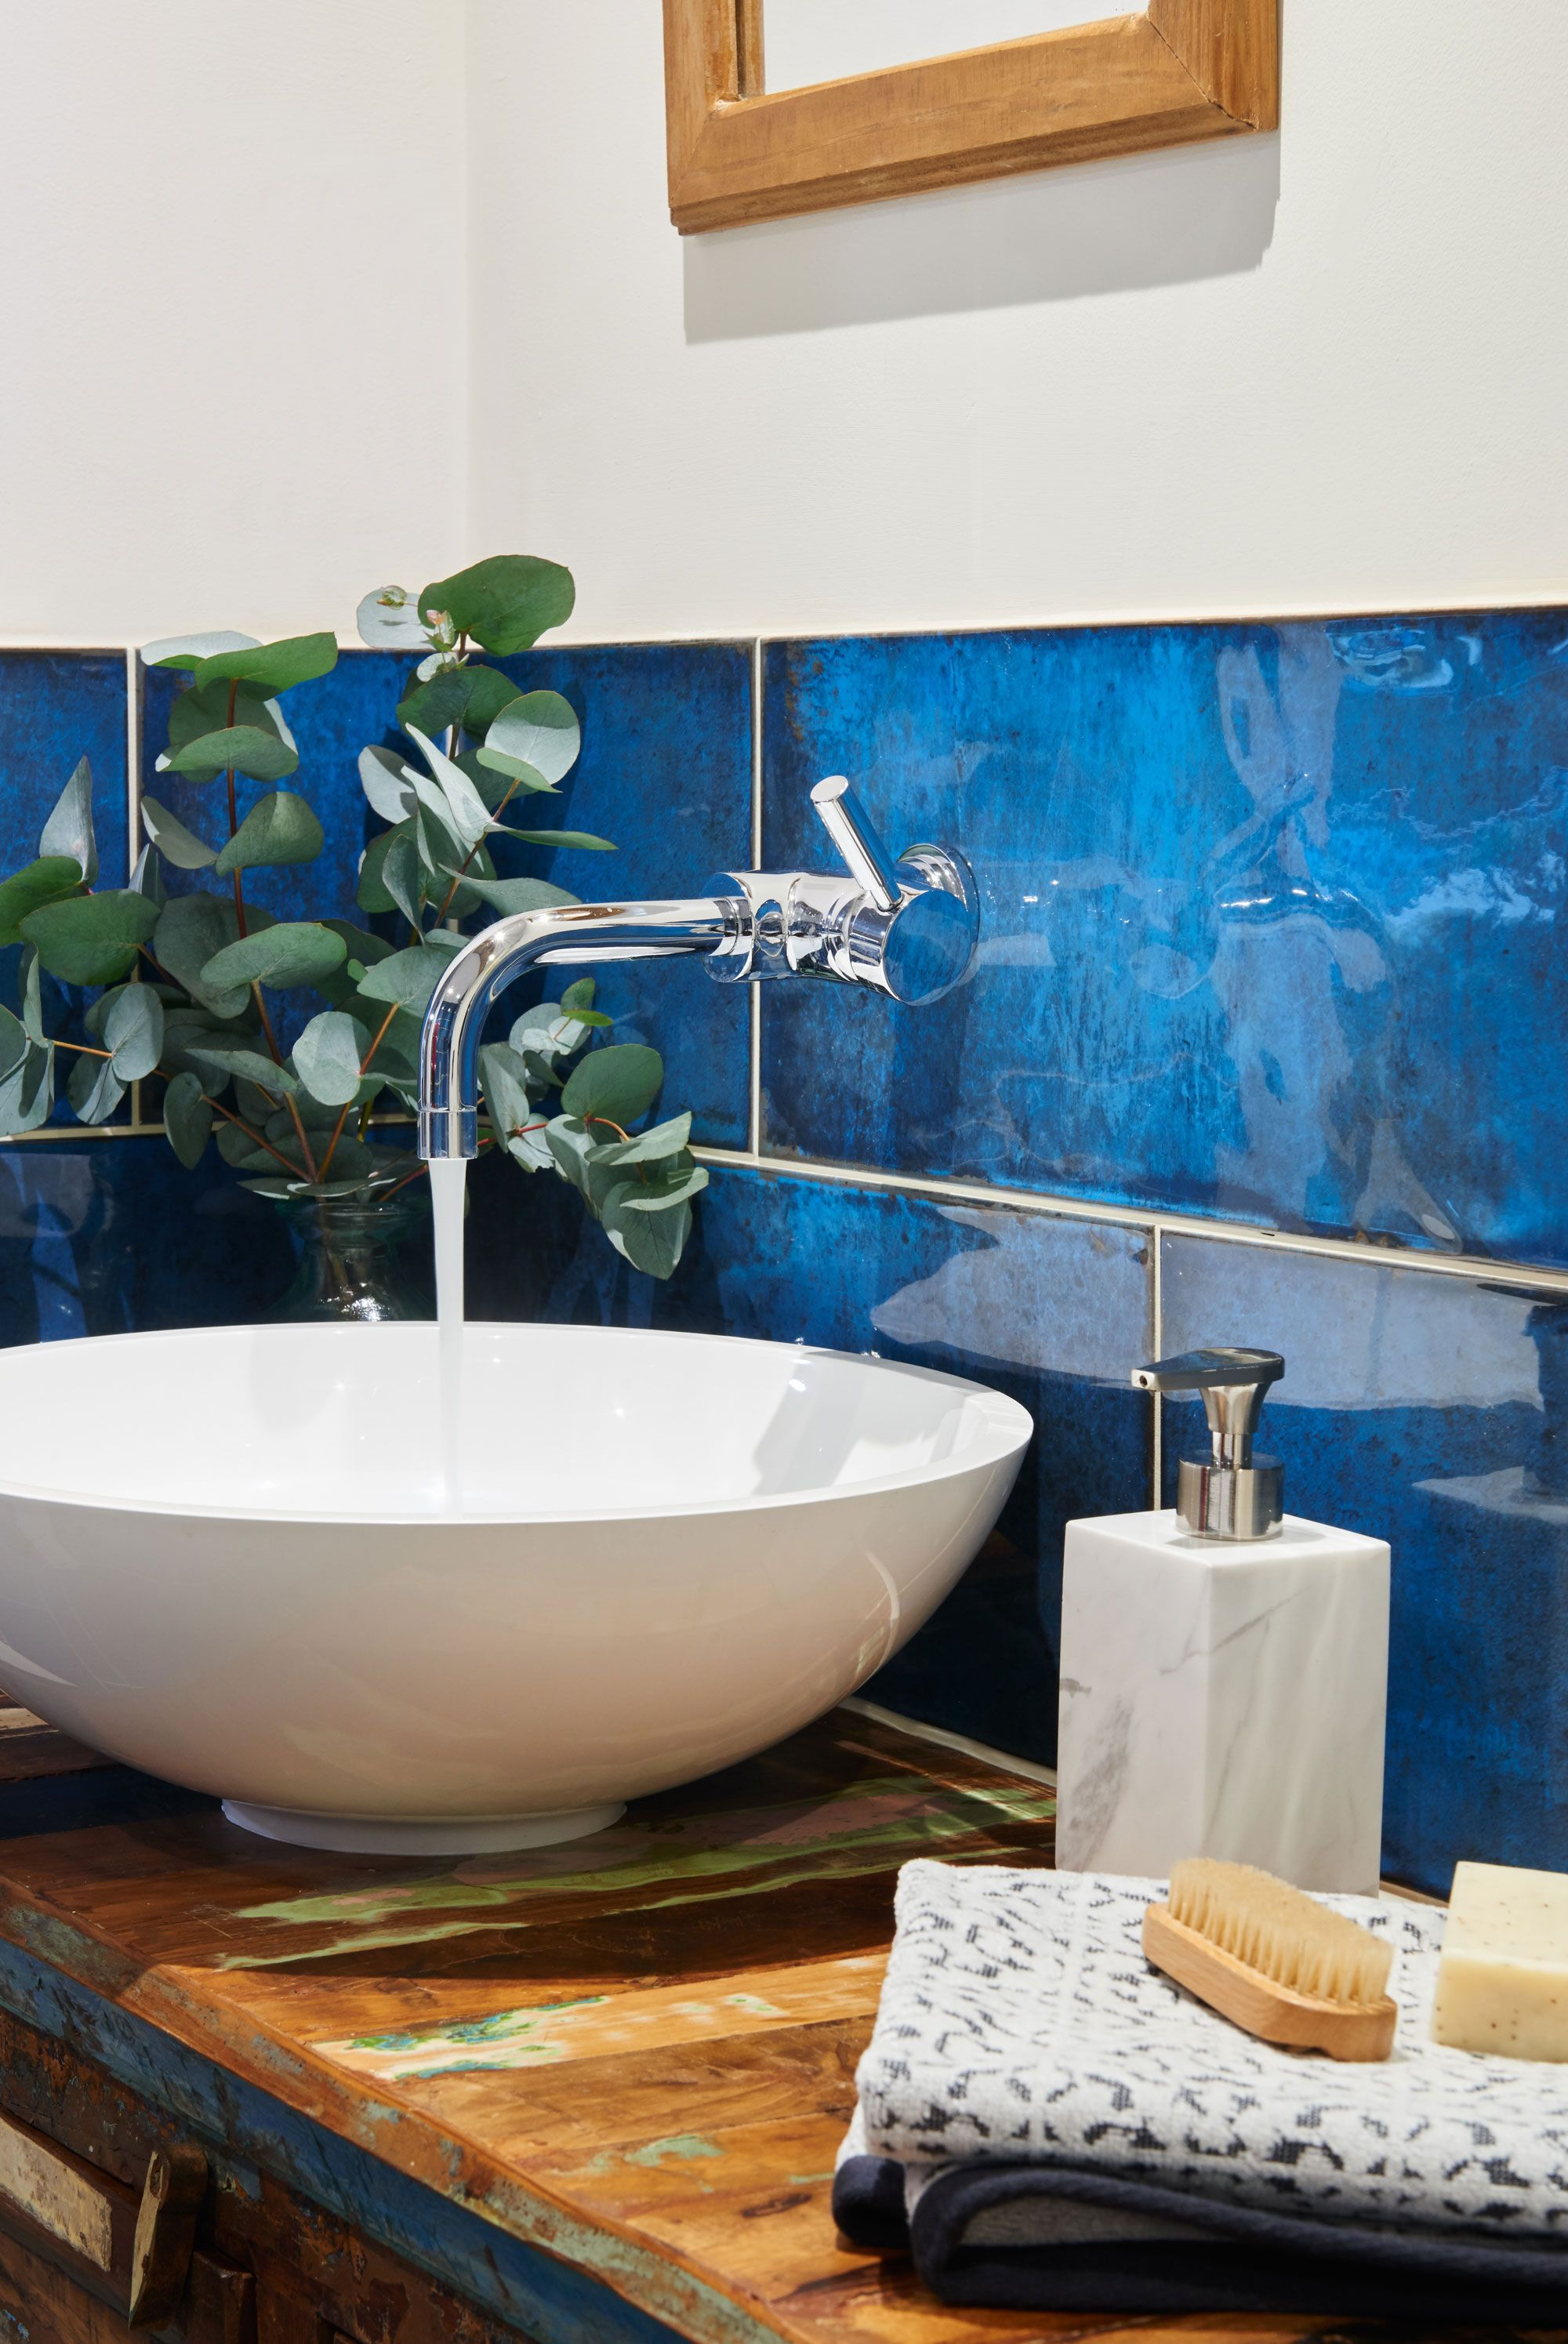 montblanc blue ceramic tile | factors, originals and walls